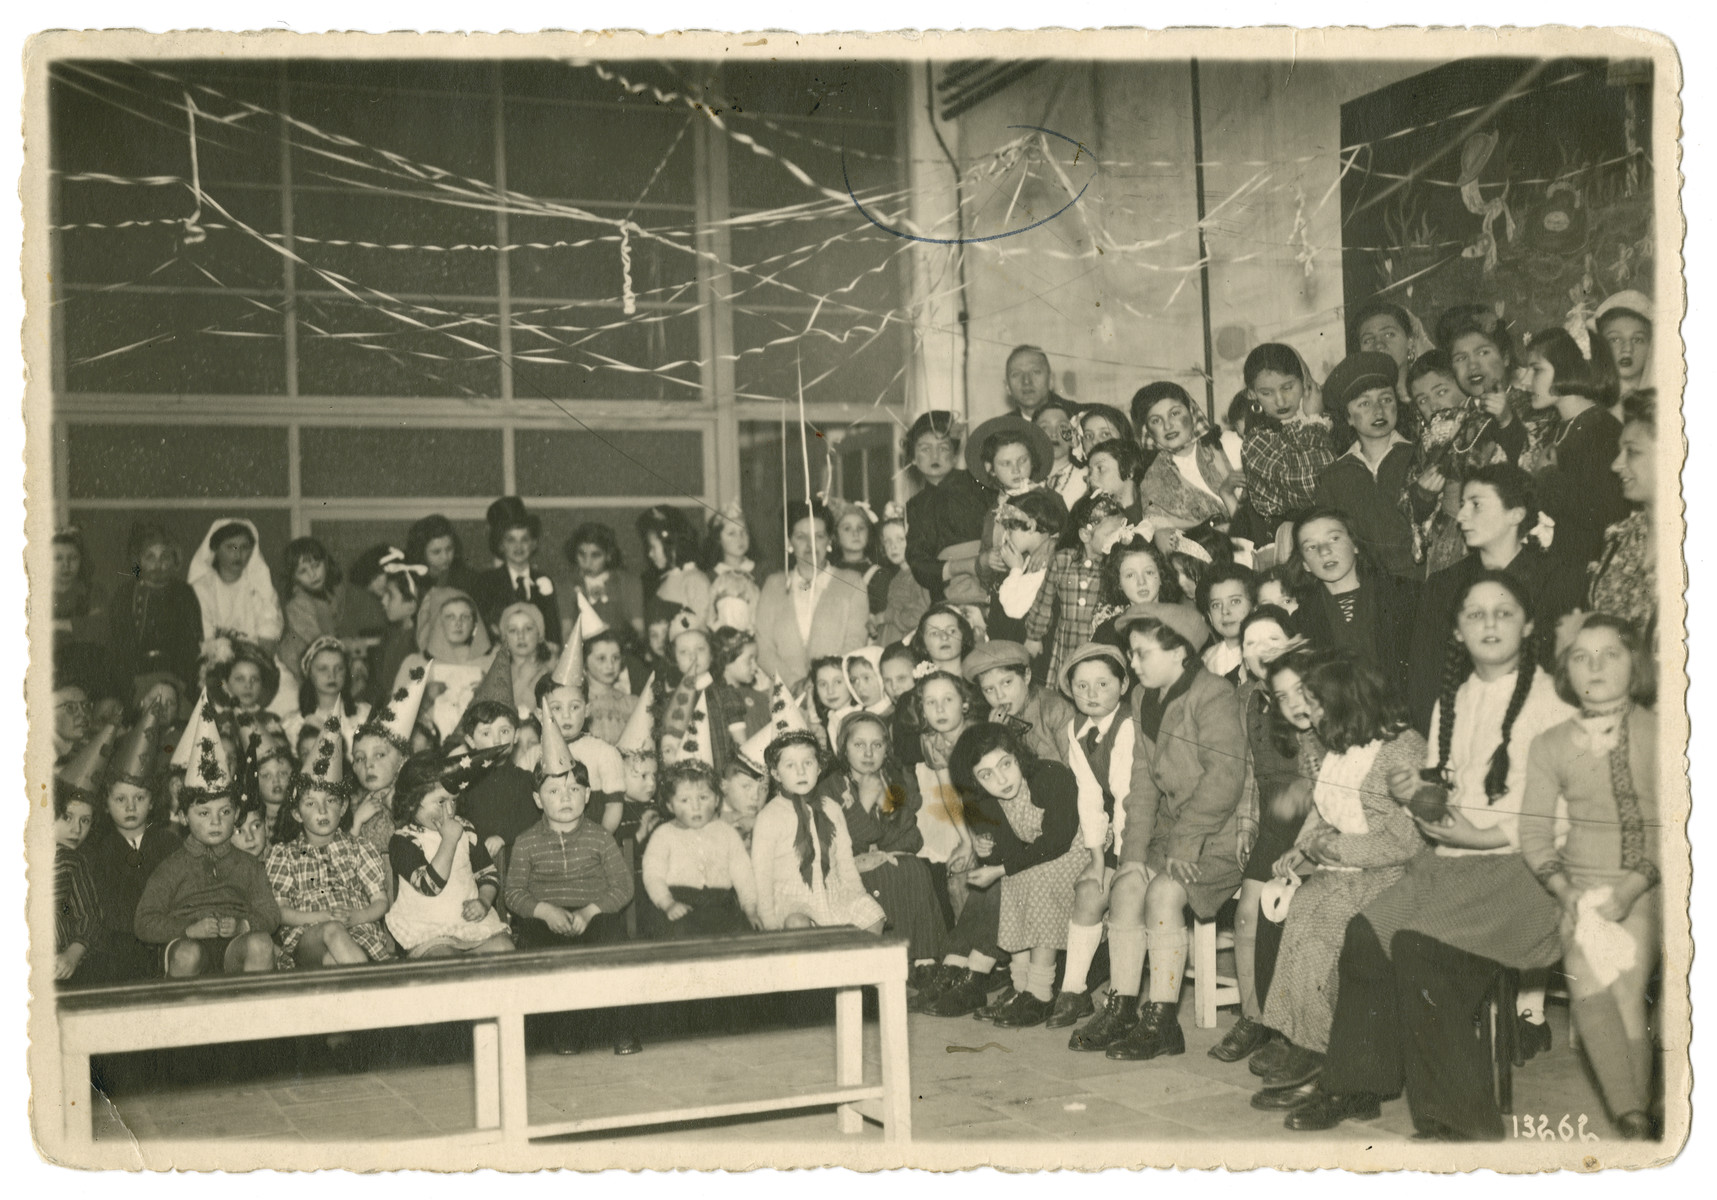 Group portrait of children, some wearing costumes, in the Yesodei HaTorah school in Antwerp.  Eva Schonberg is pictured in the front row, leaning over, in a dark sweater. Next to her on the right is Friedi Teitelbaum.  To the left of Ava is Astrid Freudman.  Pictured third from the left wearing a hood is Evelyn Goldenberger.